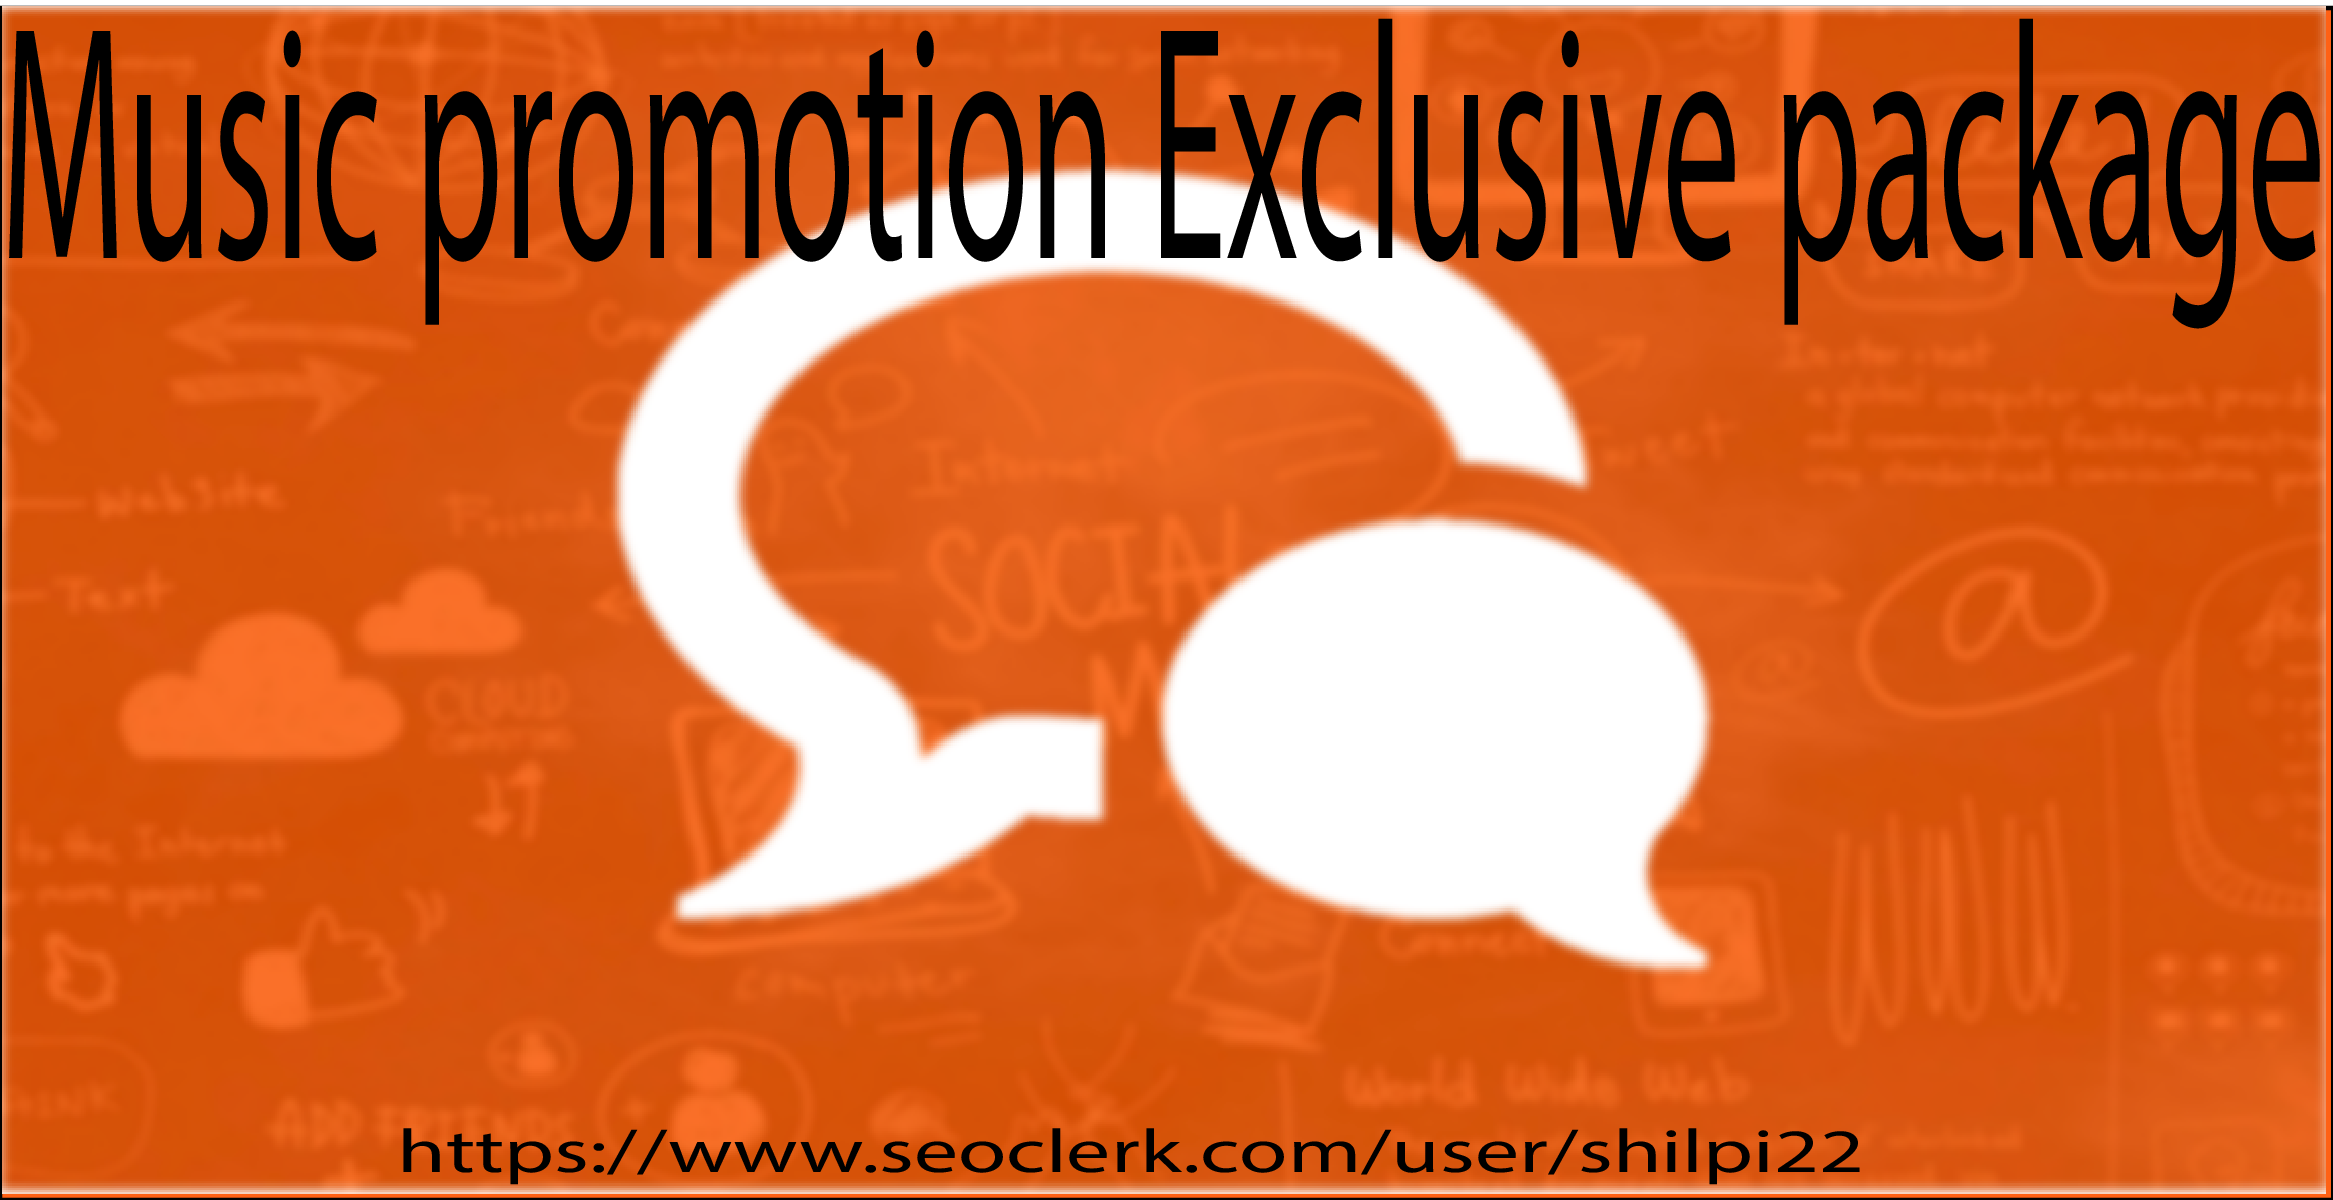 Purchase Exclusive Music Promotion package